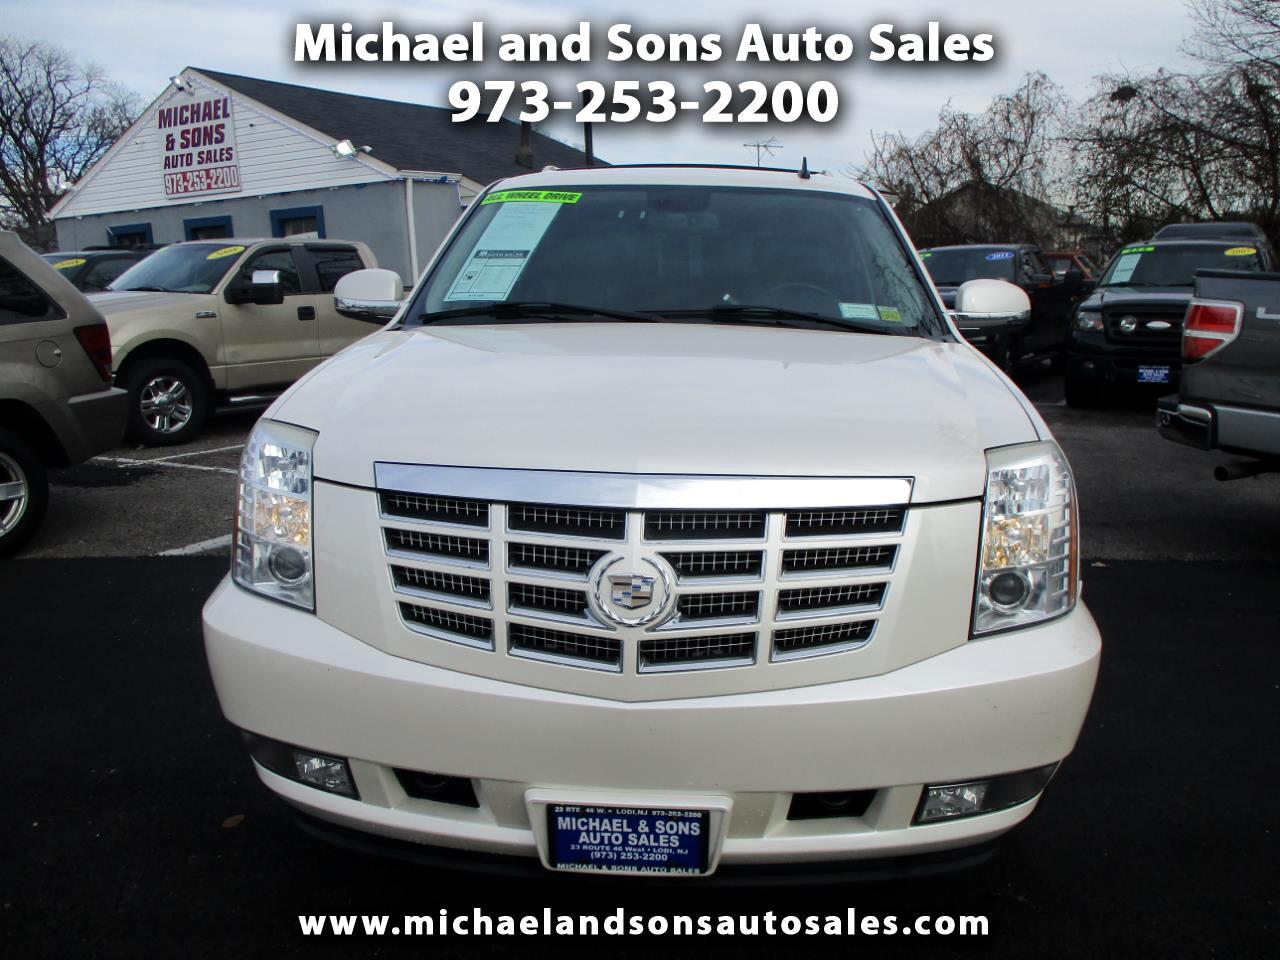 used cars for sale lodi nj 07644 michael and sons auto sales